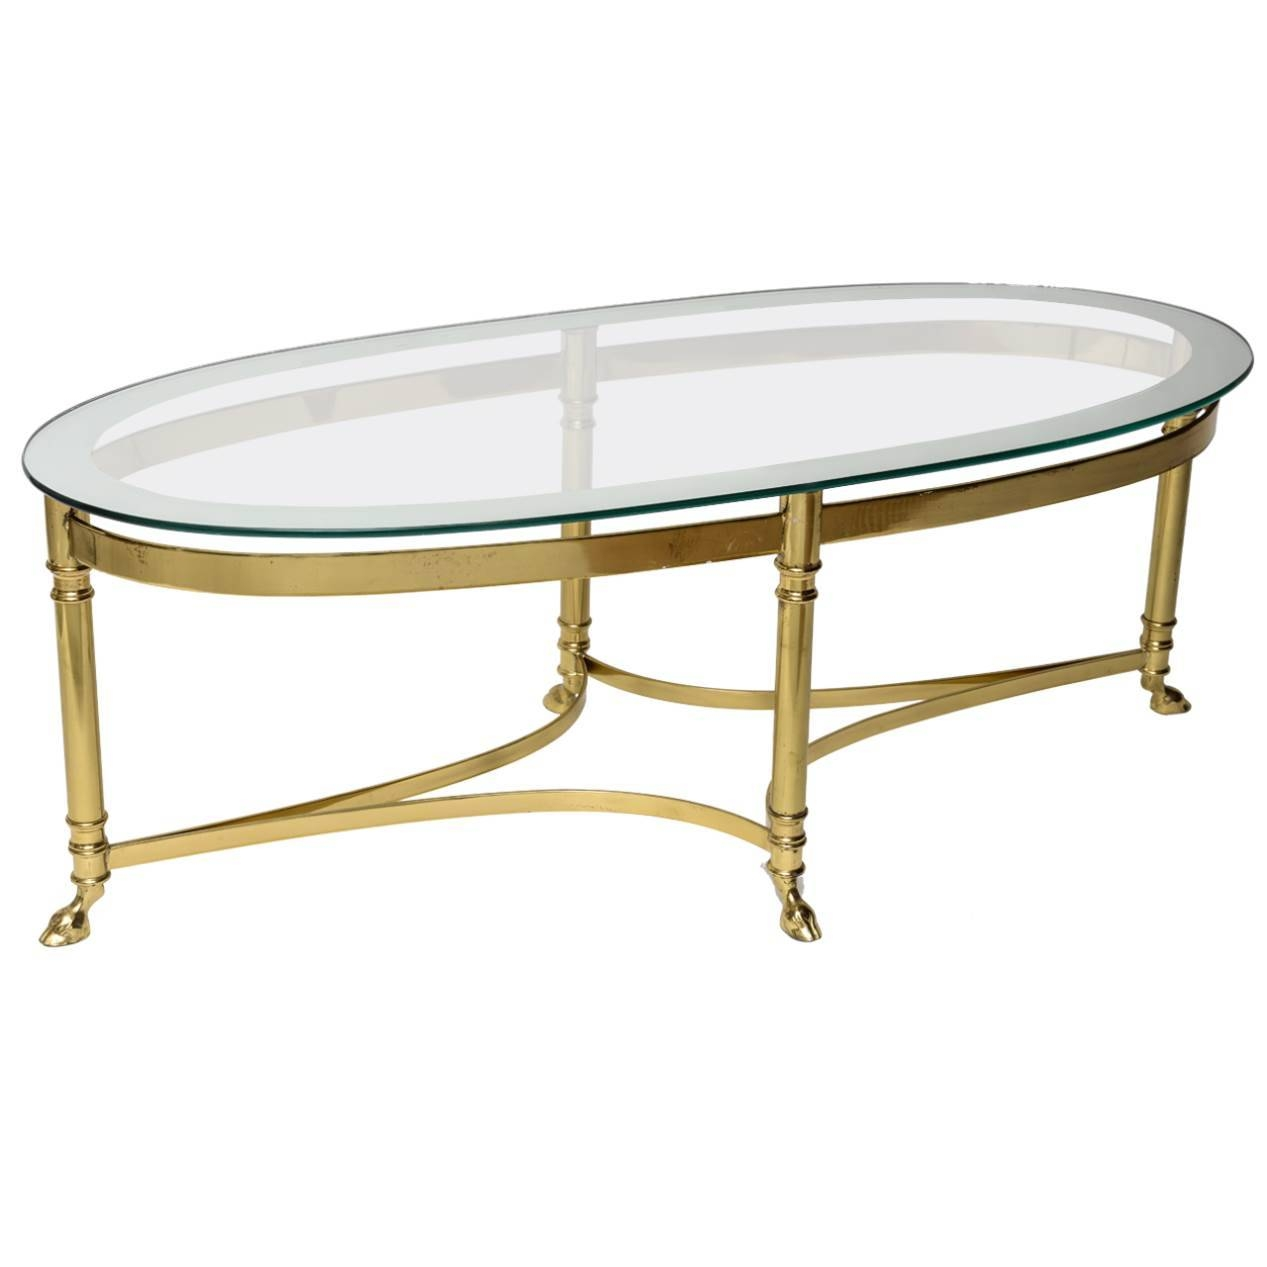 Glass Coffee Tables Online | Nucleus Home throughout Glass Topped Coffee Tables (Image 3 of 15)